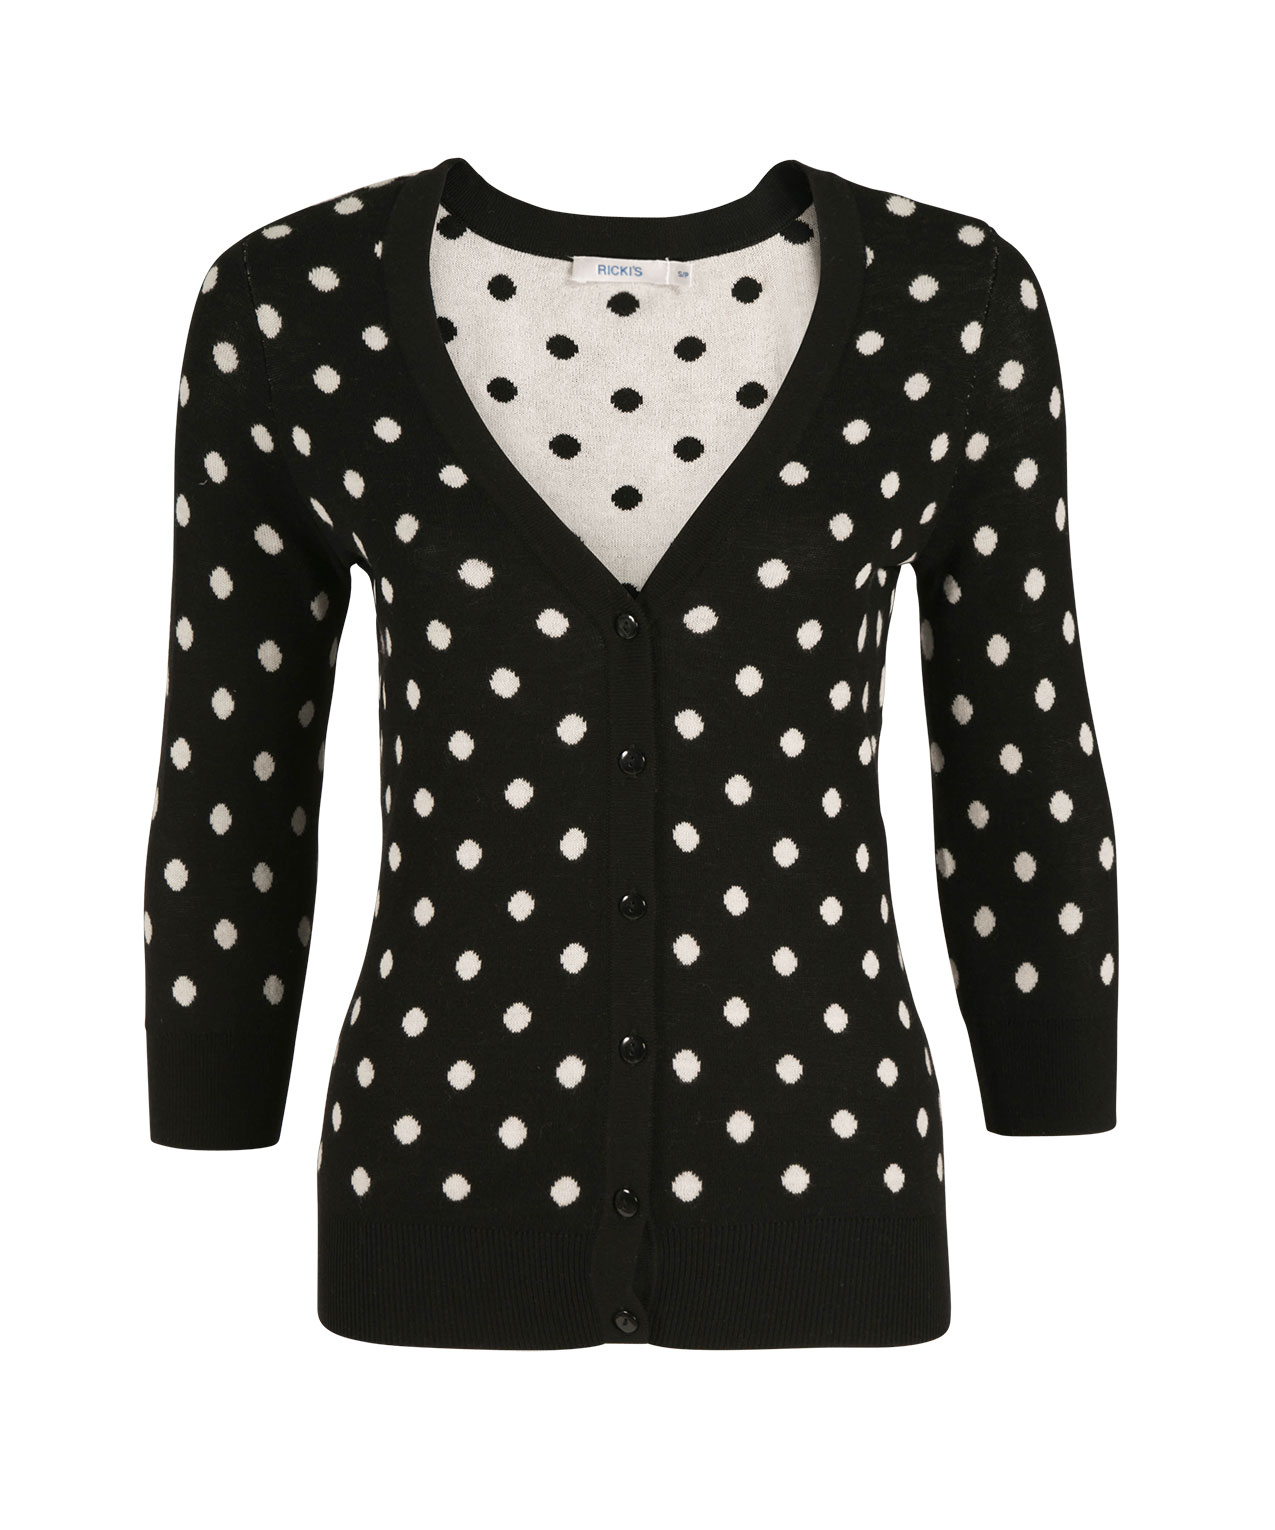 """Charming polka dot, we choose you (and chic, cropped sleeves) to energize our take on the classic cardigan with an easy snap front. Petite polka dot cardigan in ecru with black Long sleeves Snap closure Unlined Regular: Approx. 21 1/2"""" from shoulder Petite: Approx. 20 ."""